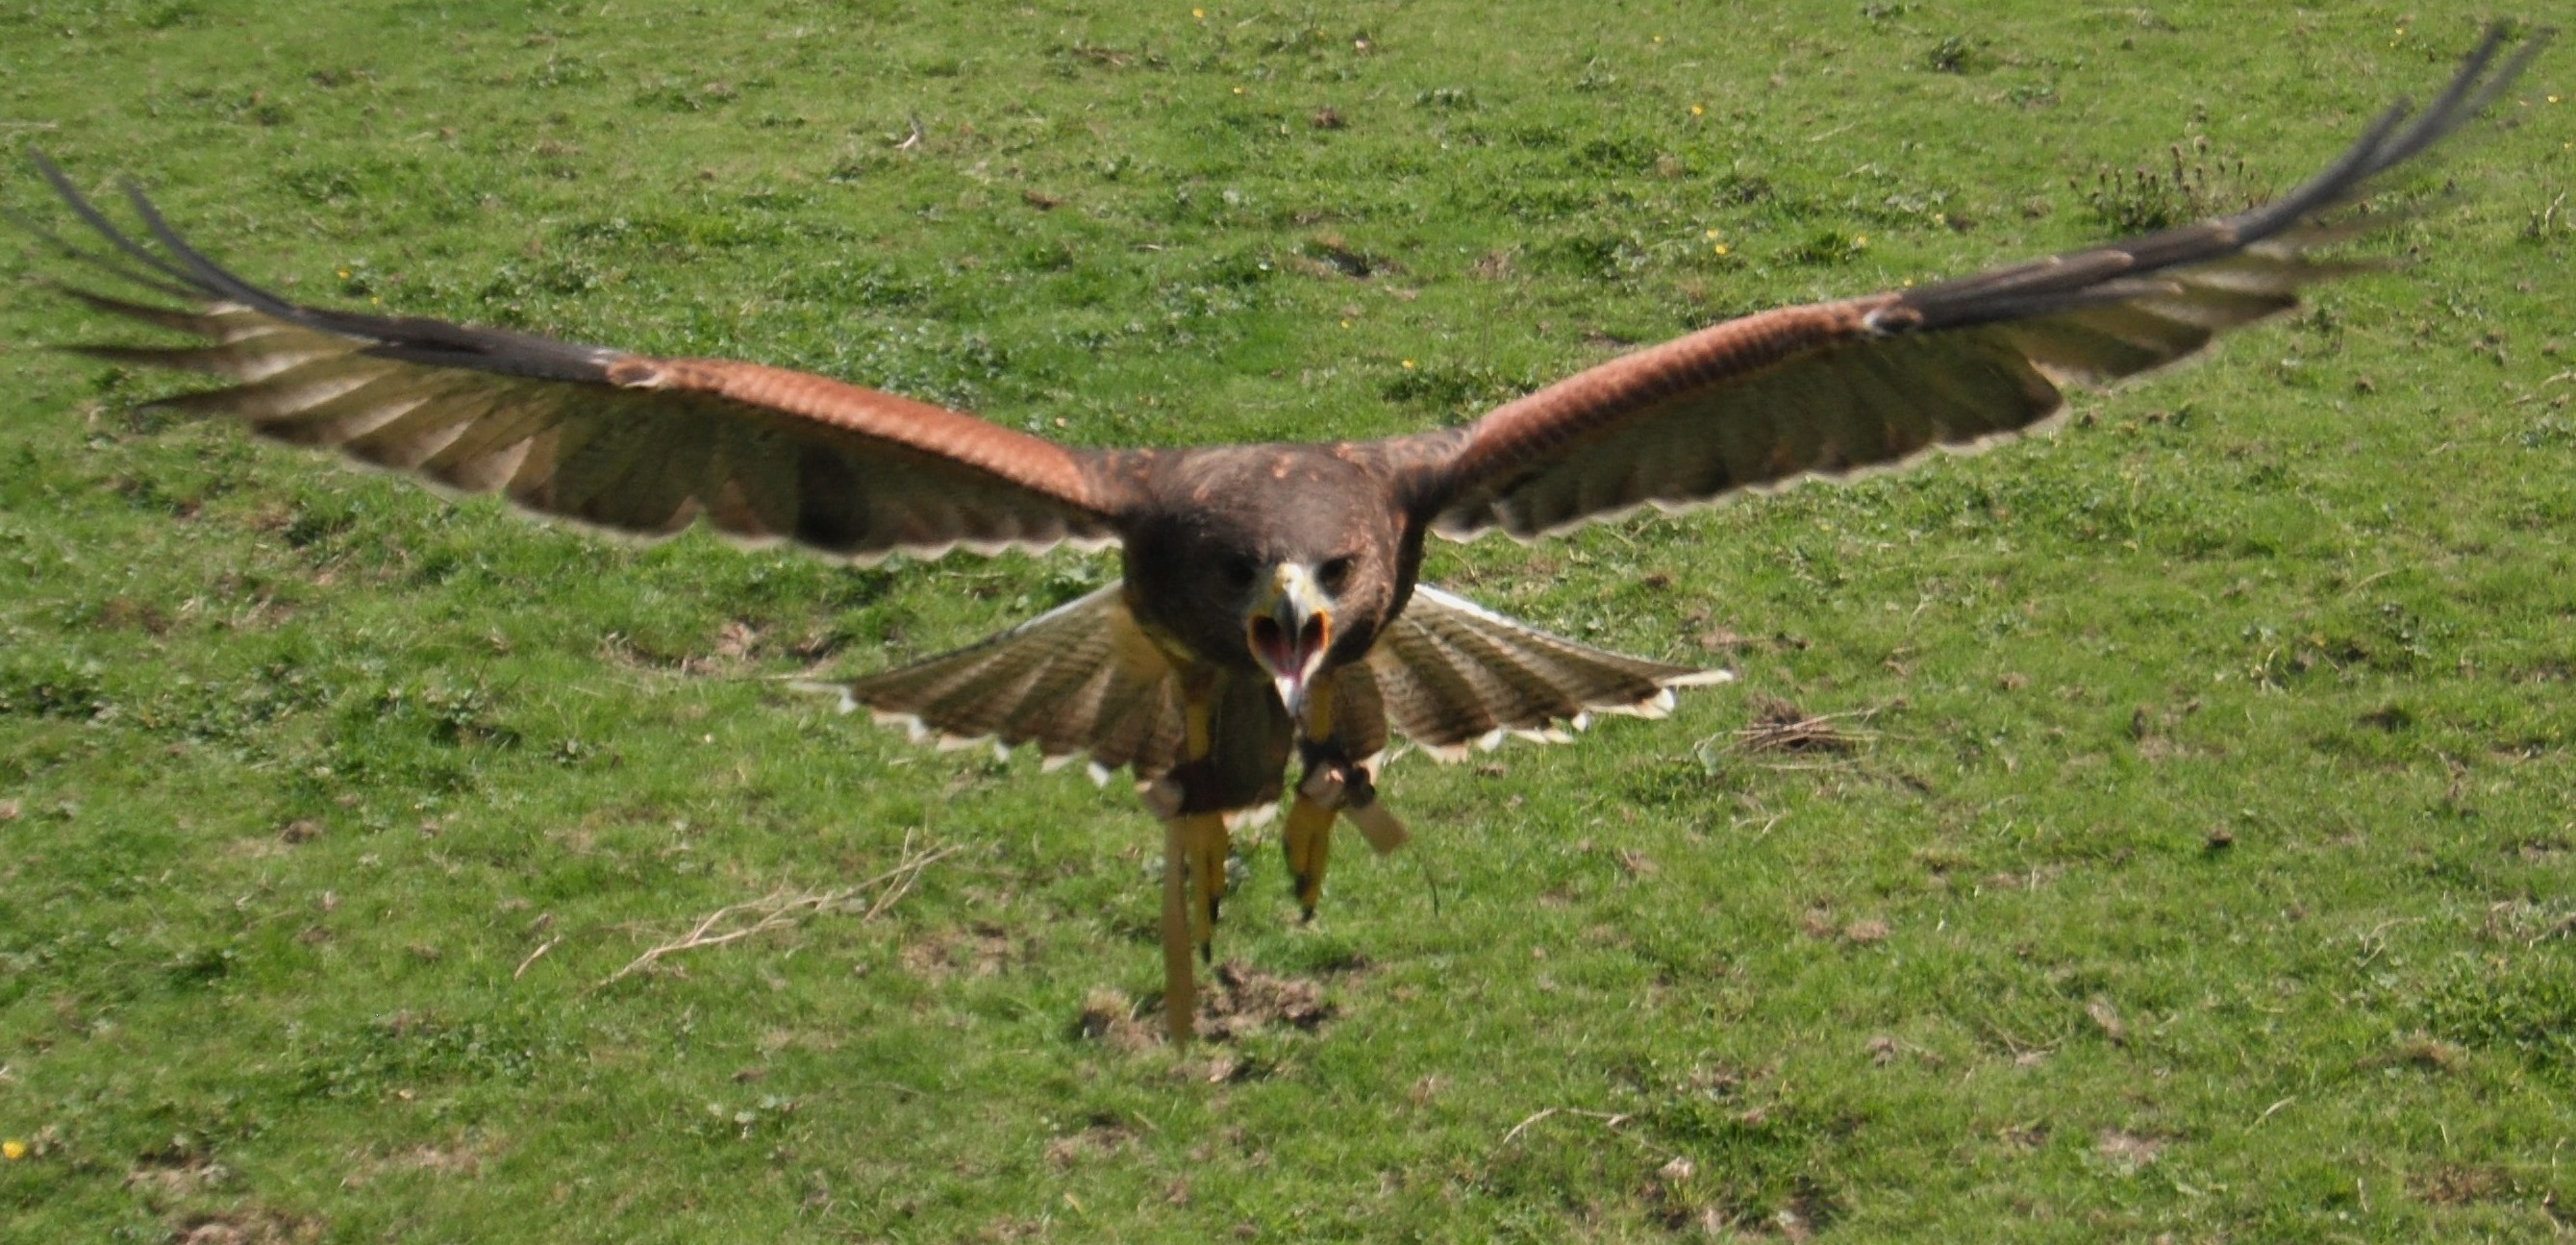 Gryff the Harris Hawk in Flight